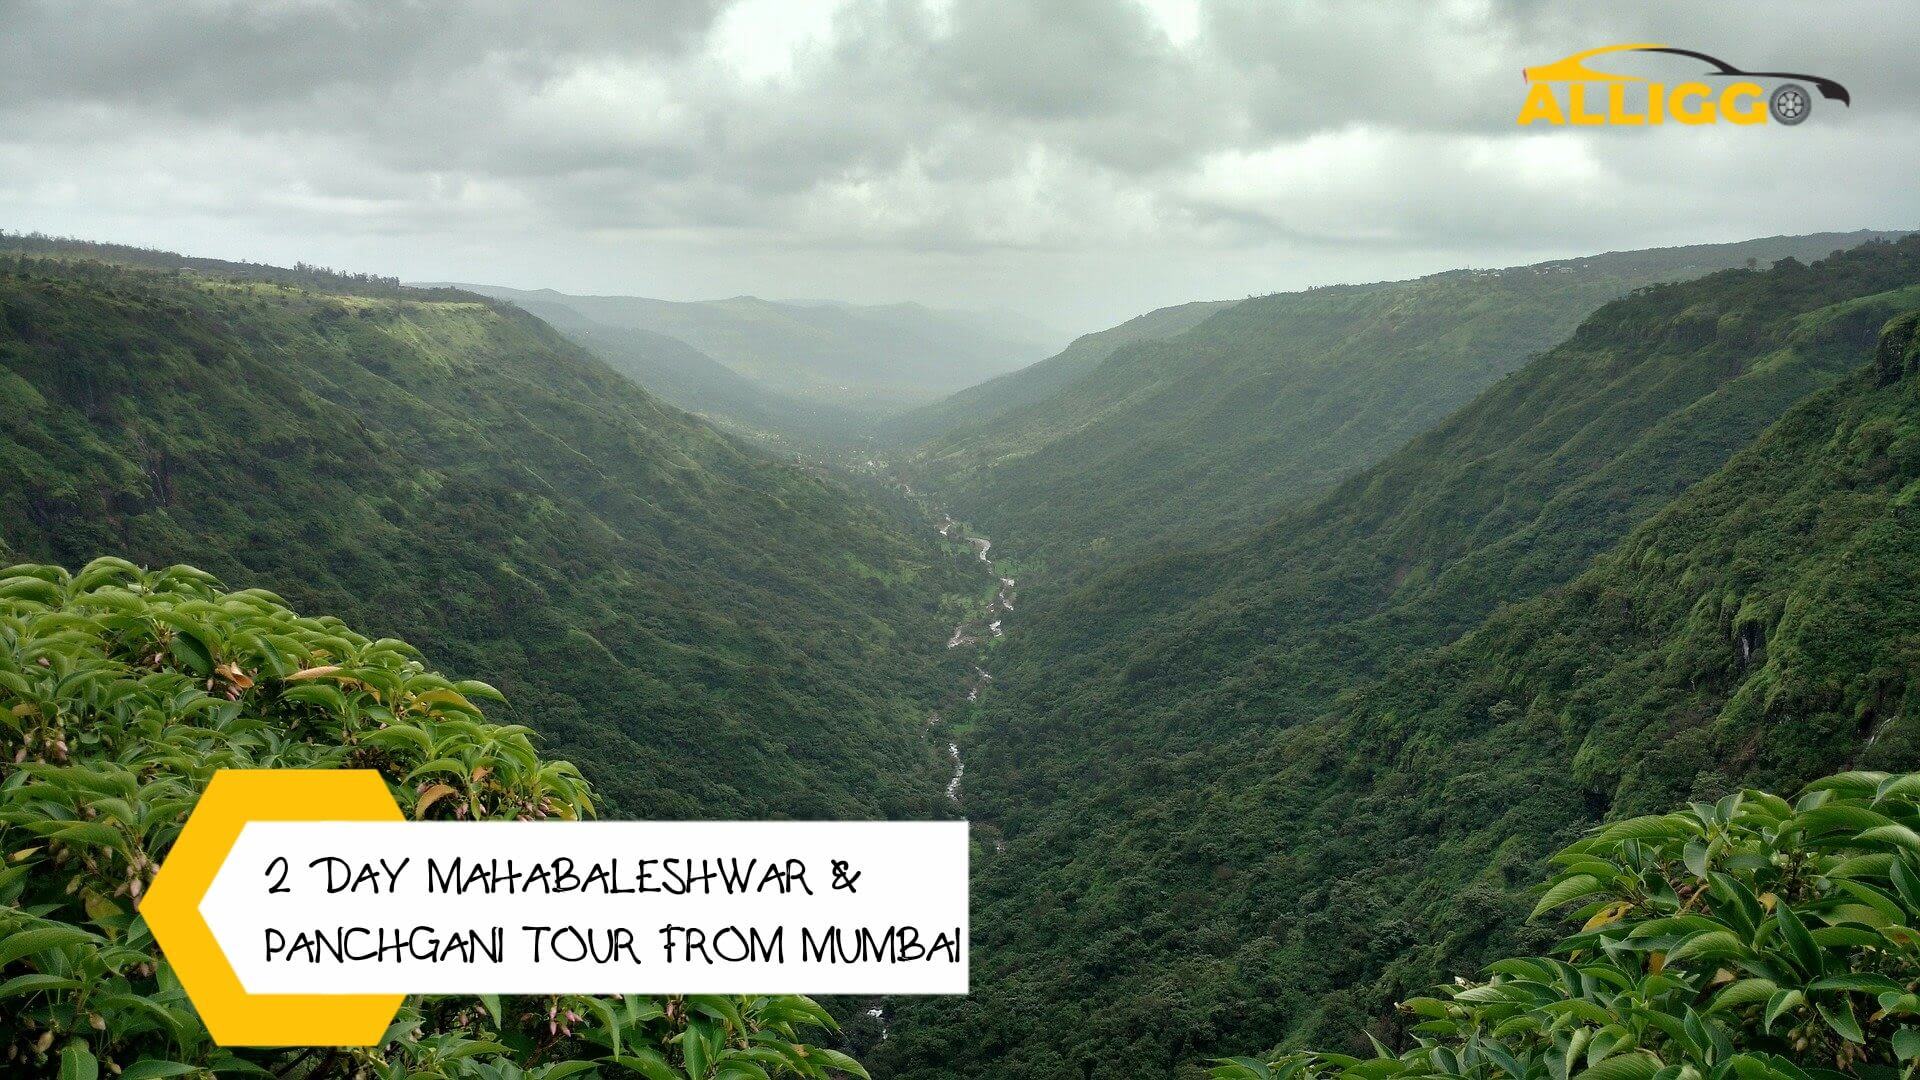 Alliggo_Car_Rentals_2_Day_Mahabaleshwar_Panchgani_Tour_from_Mumbai